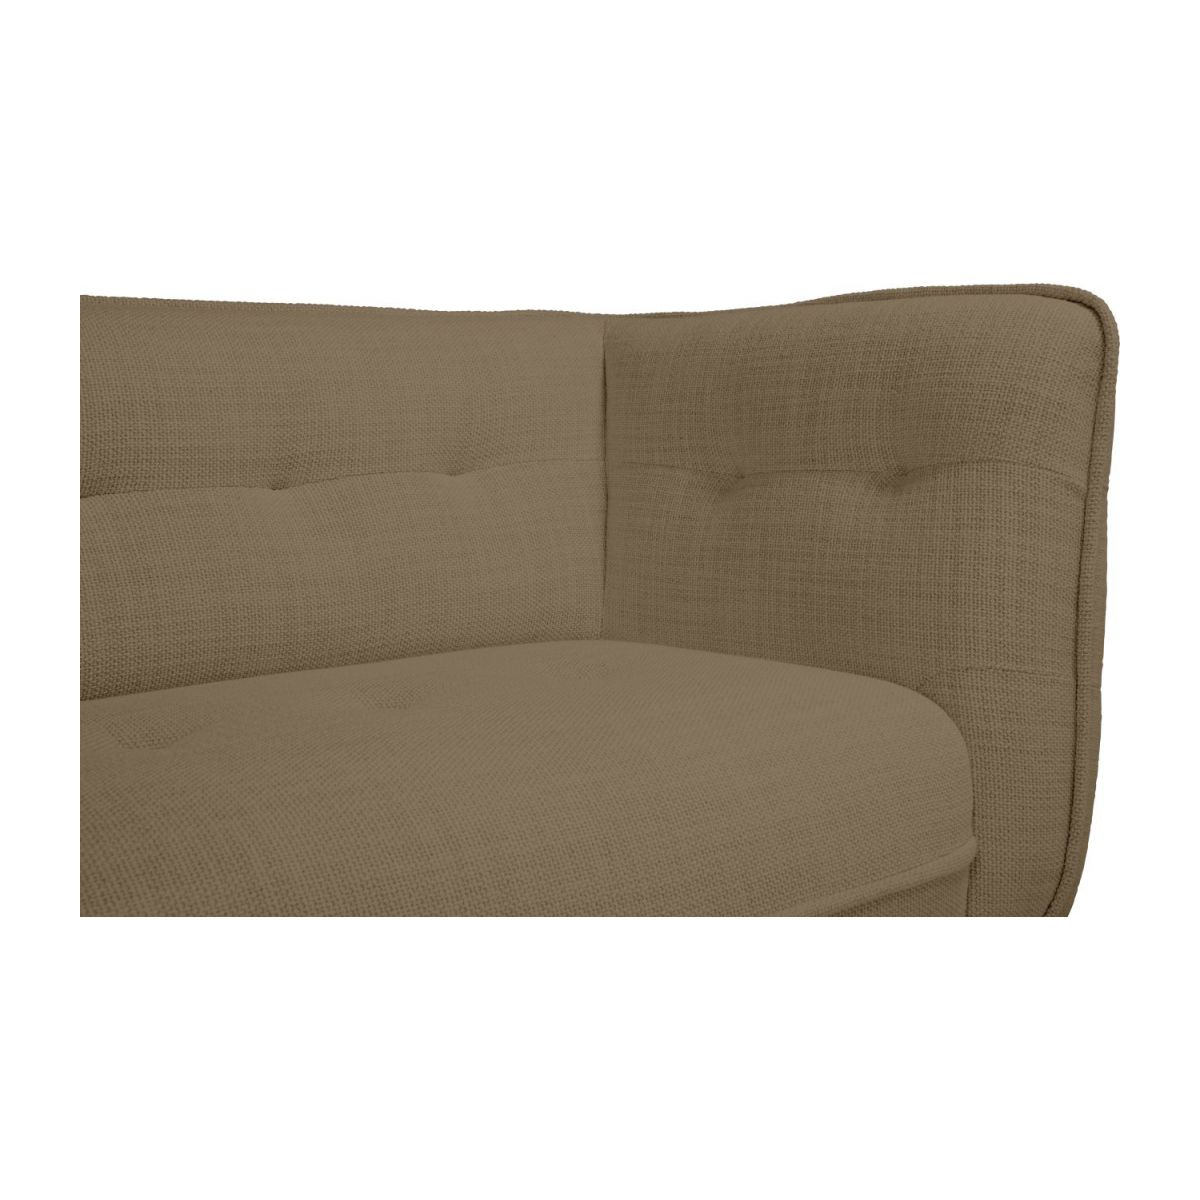 3 seater sofa in Fasoli fabric, jatoba brown and oak legs n°6